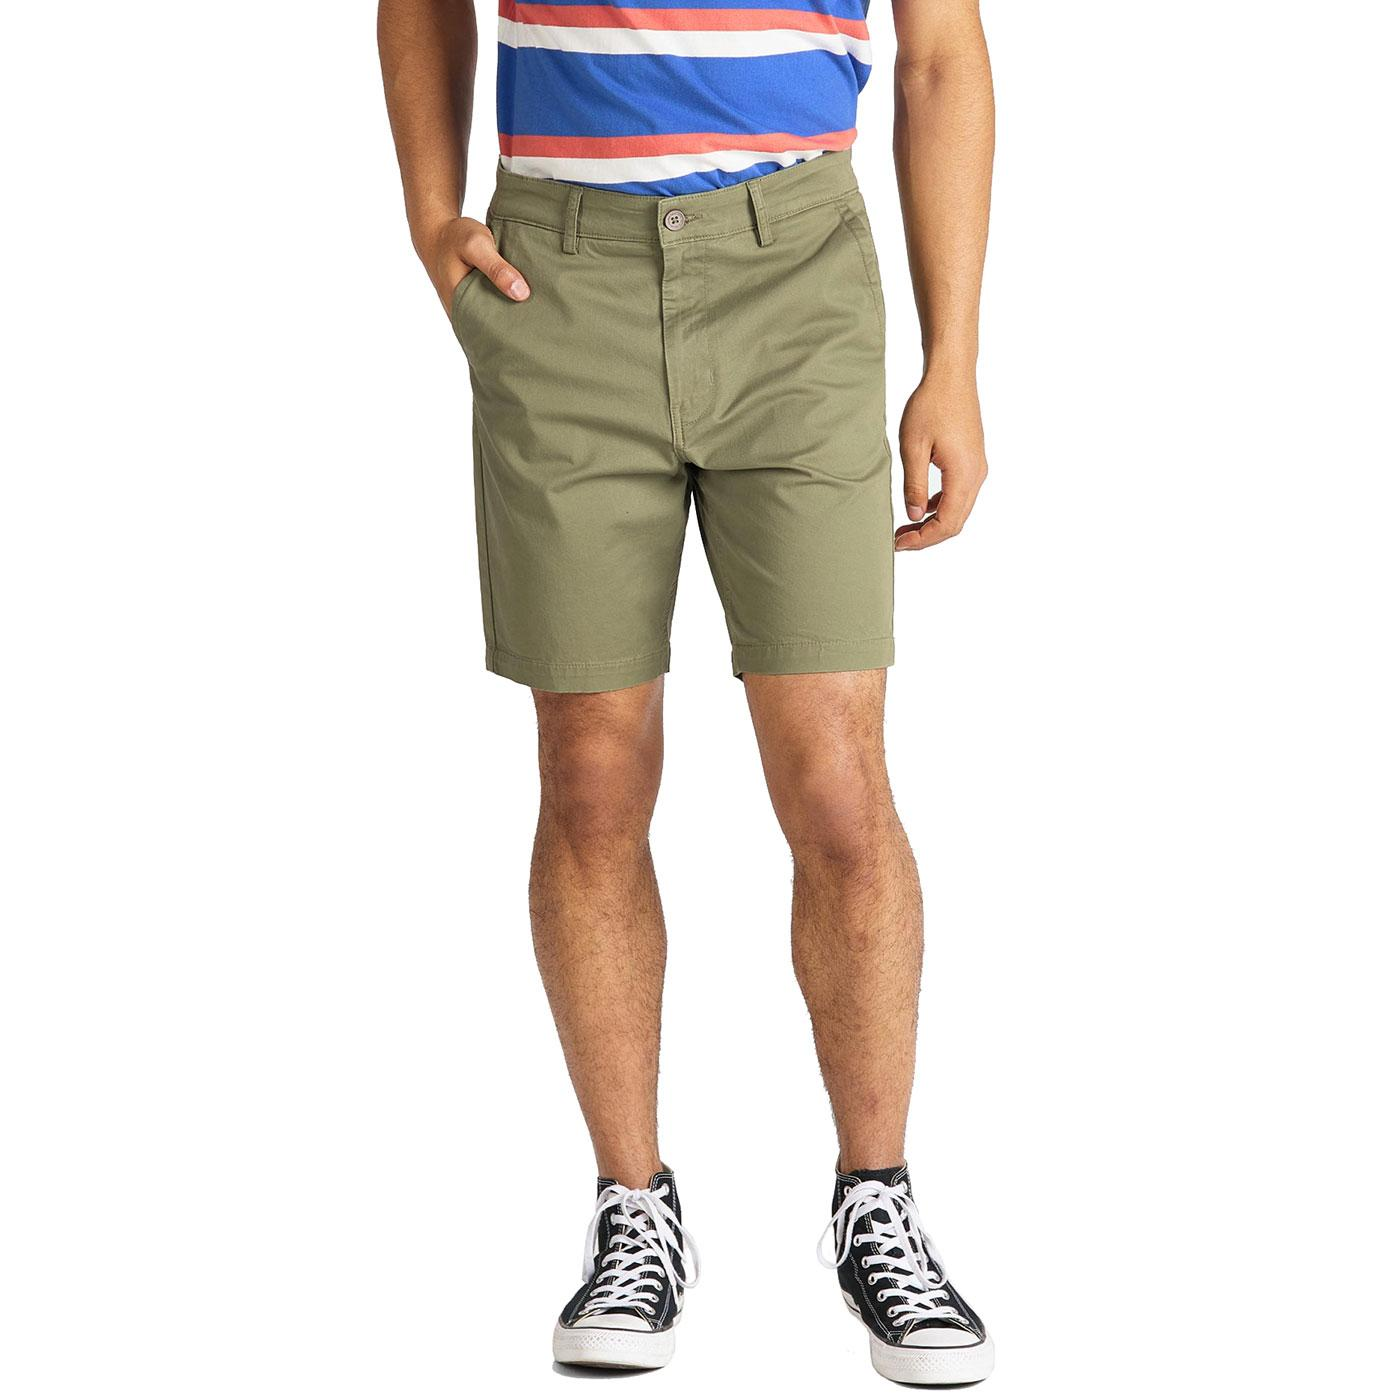 LEE JEANS Mens Slim Fit Cotton Twill Chino Shorts